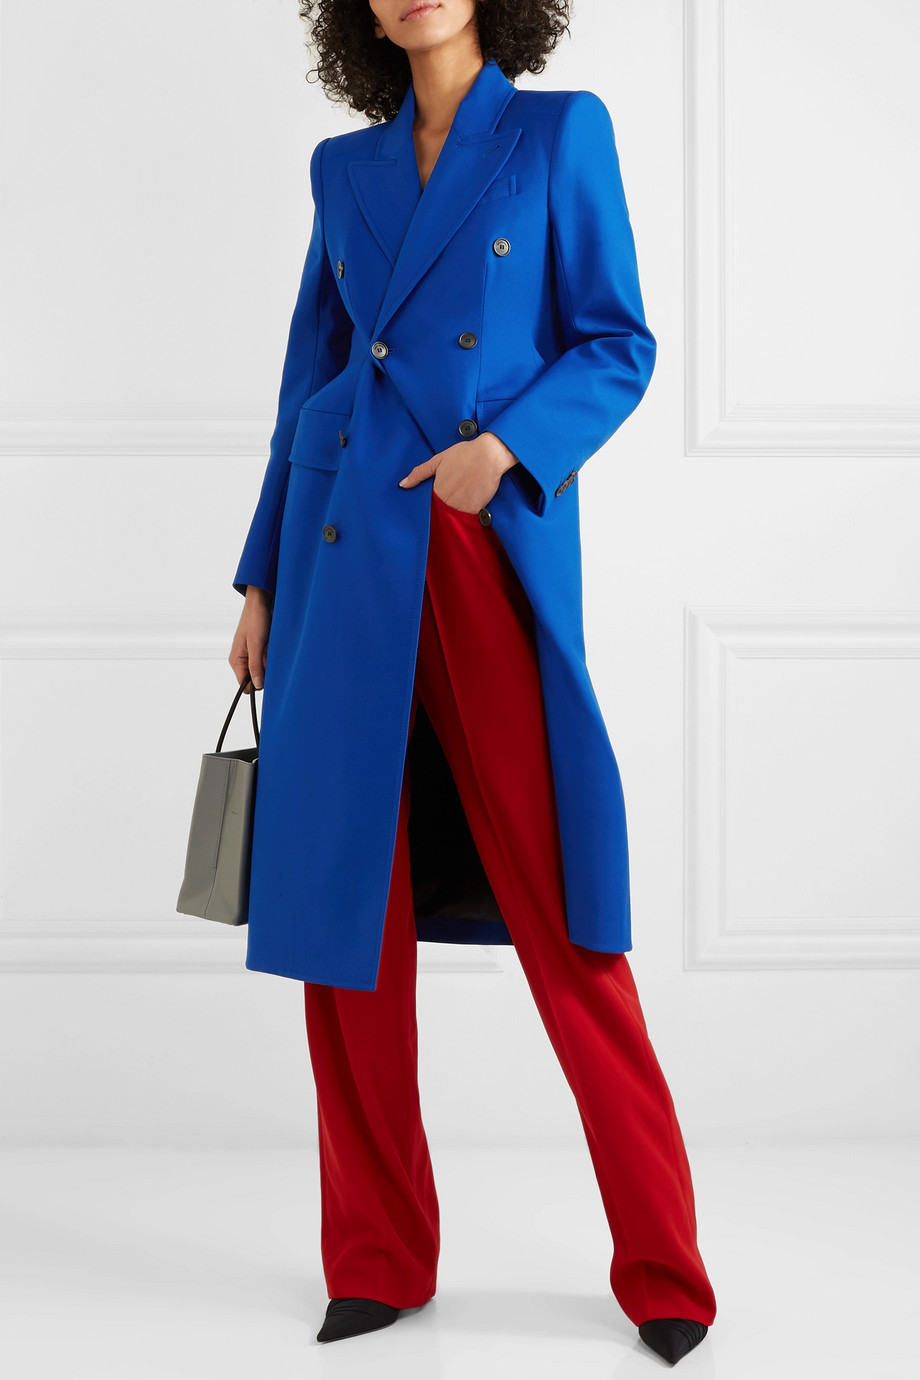 Balenciaga Hourglass double-breasted wool-blend coat with internal shoulder pads $3,200